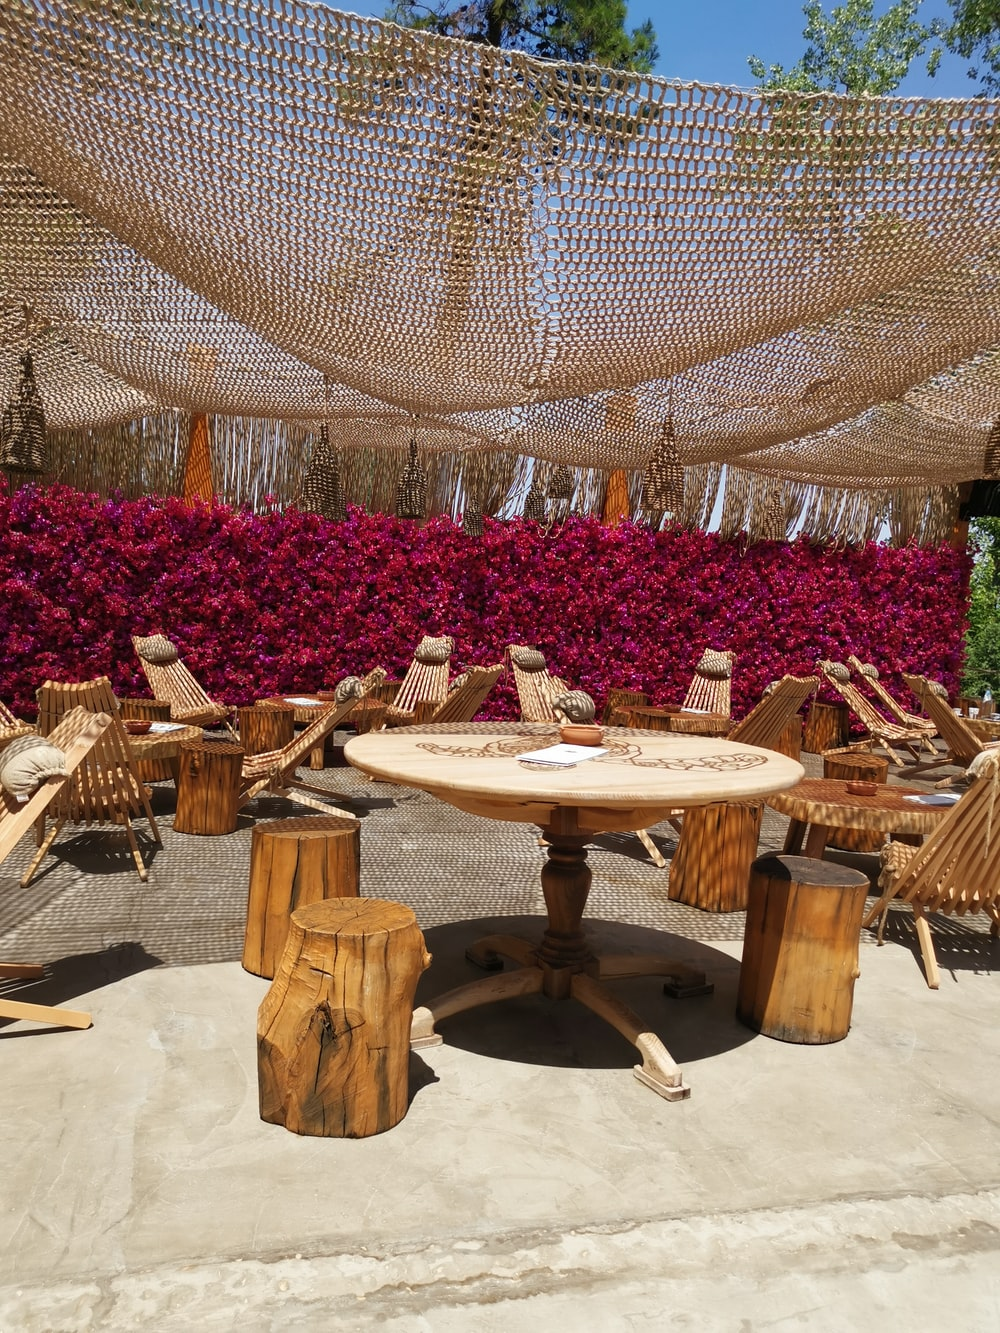 empty wooden chairs and tables outside during daytime